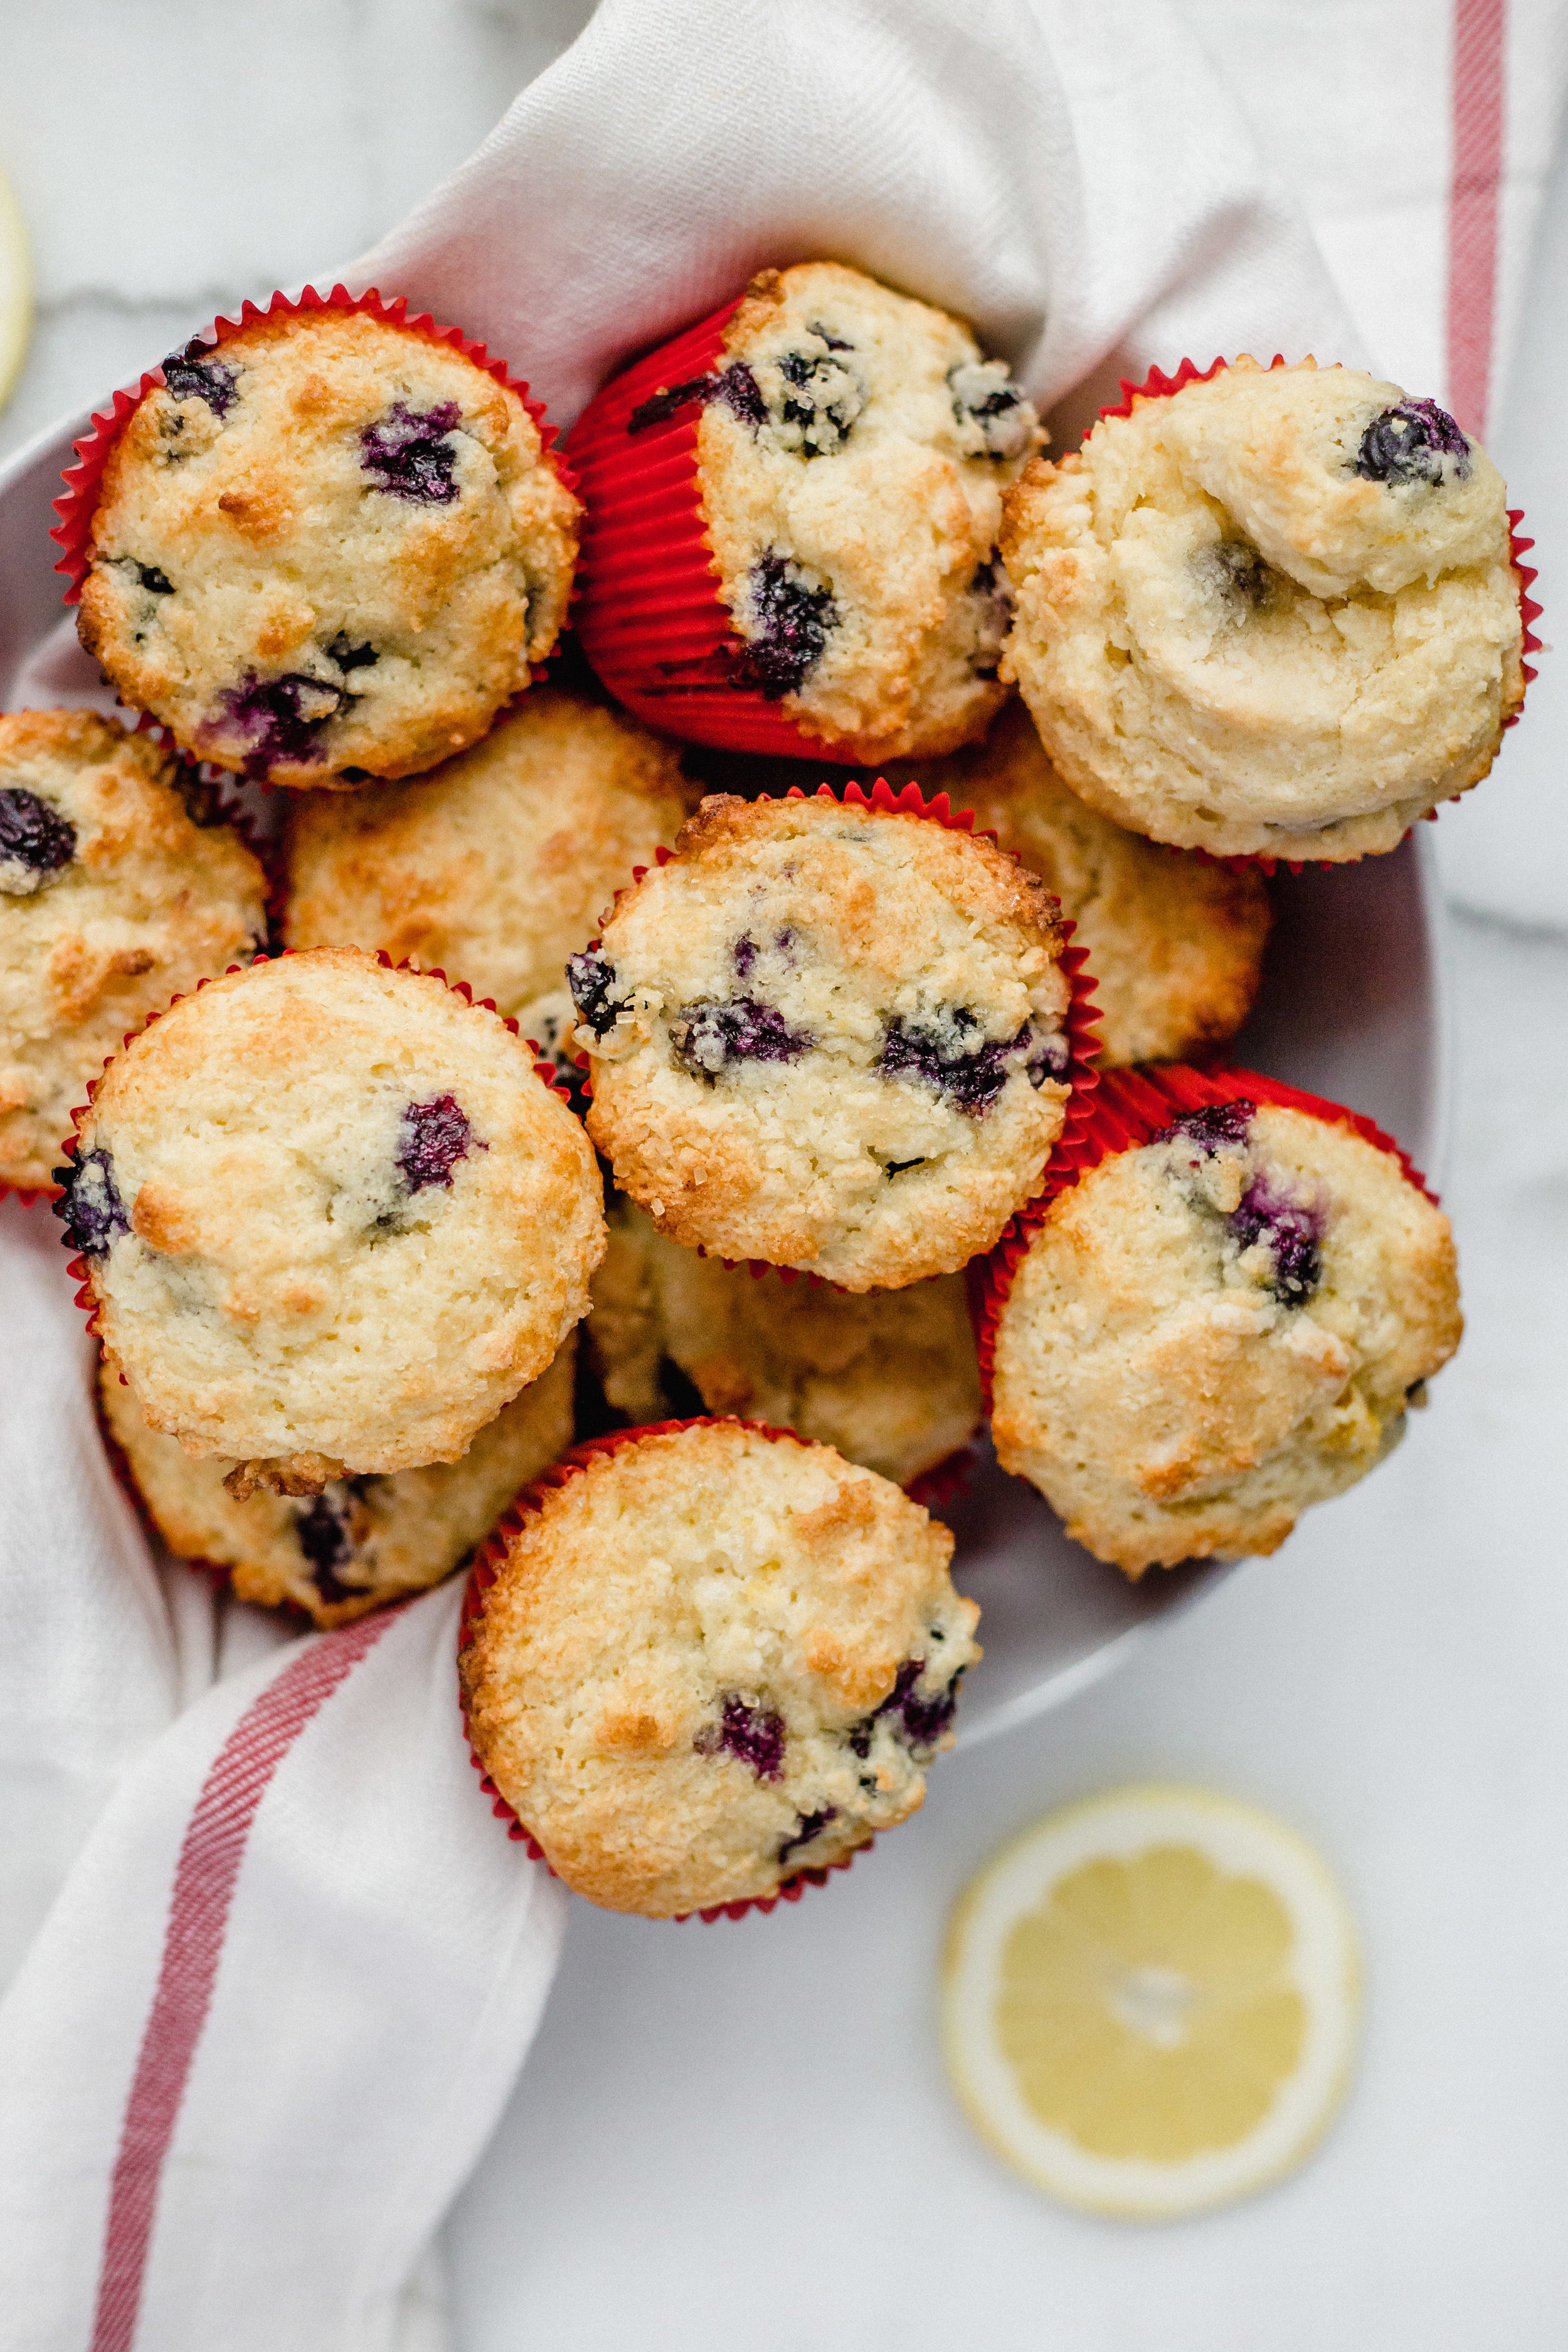 lemon_blueberry_muffins-8.jpg